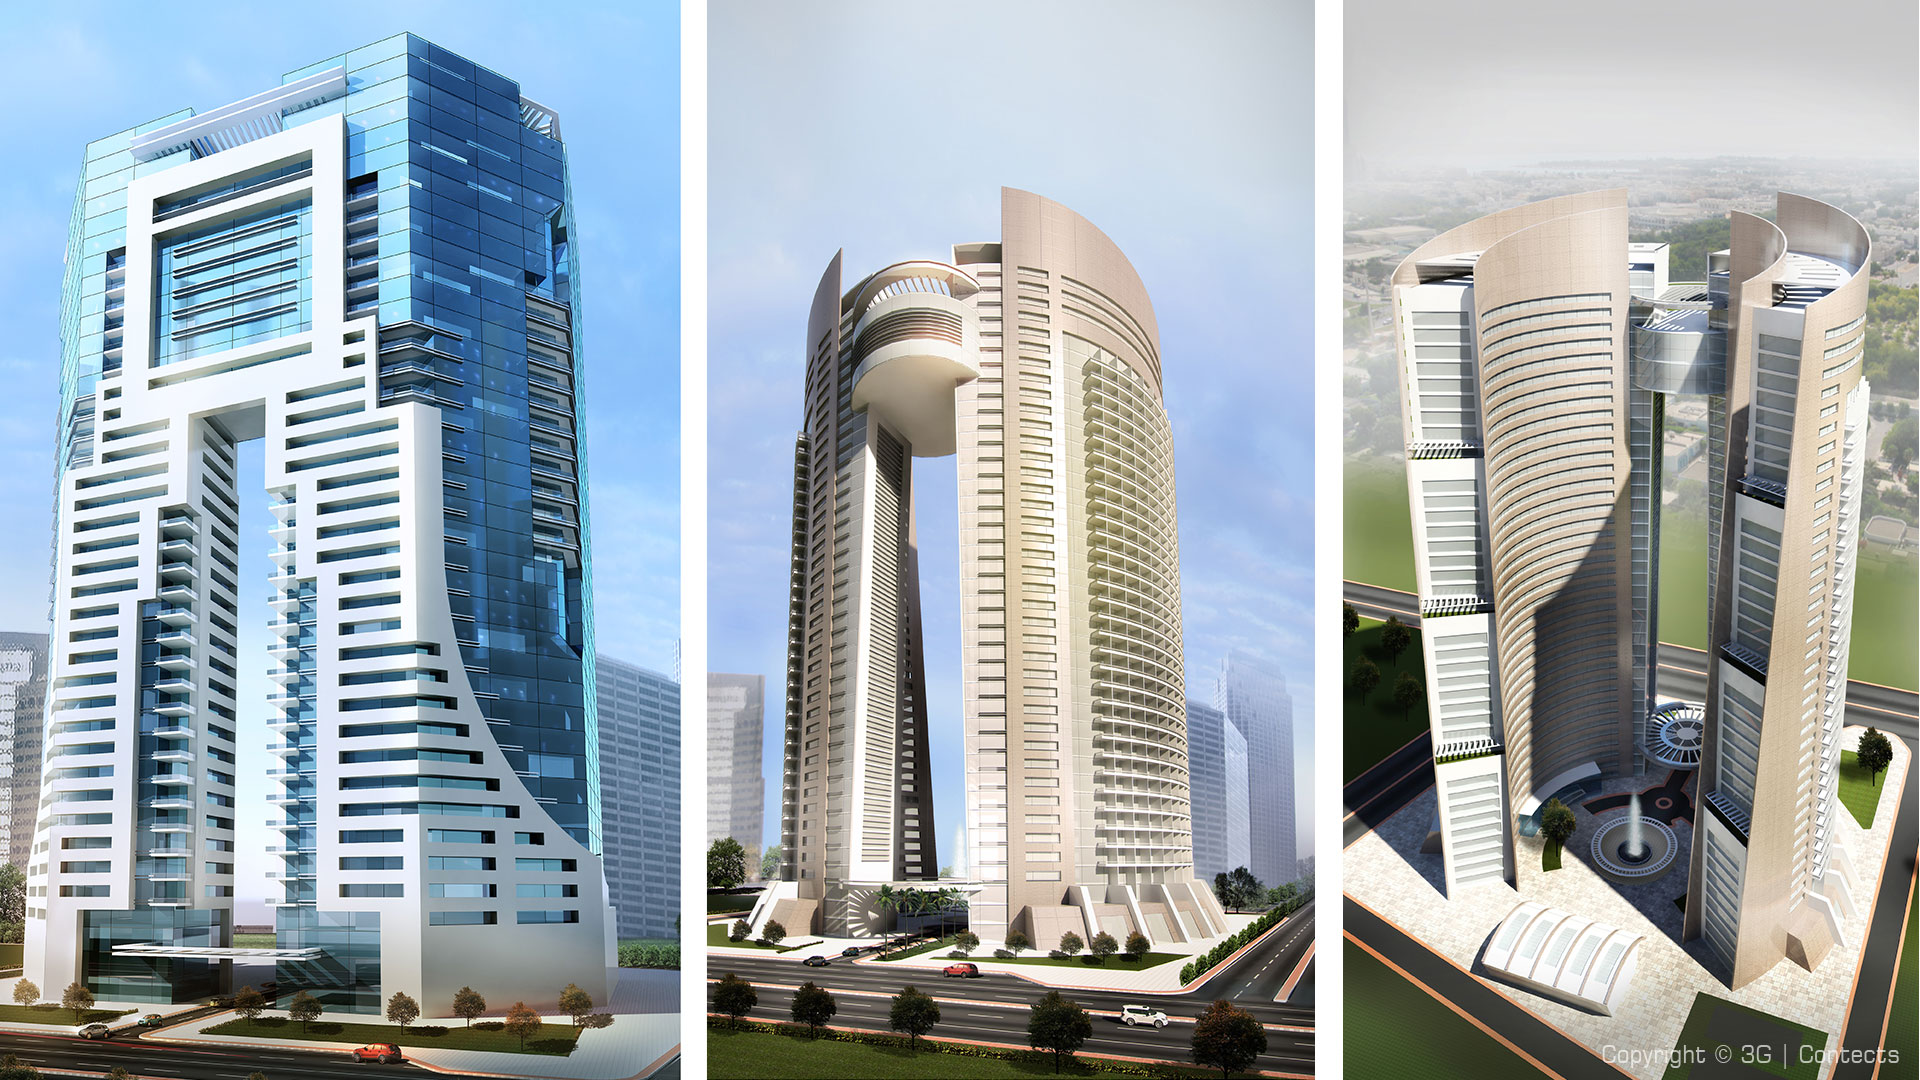 Al Bayt Real Estate Development